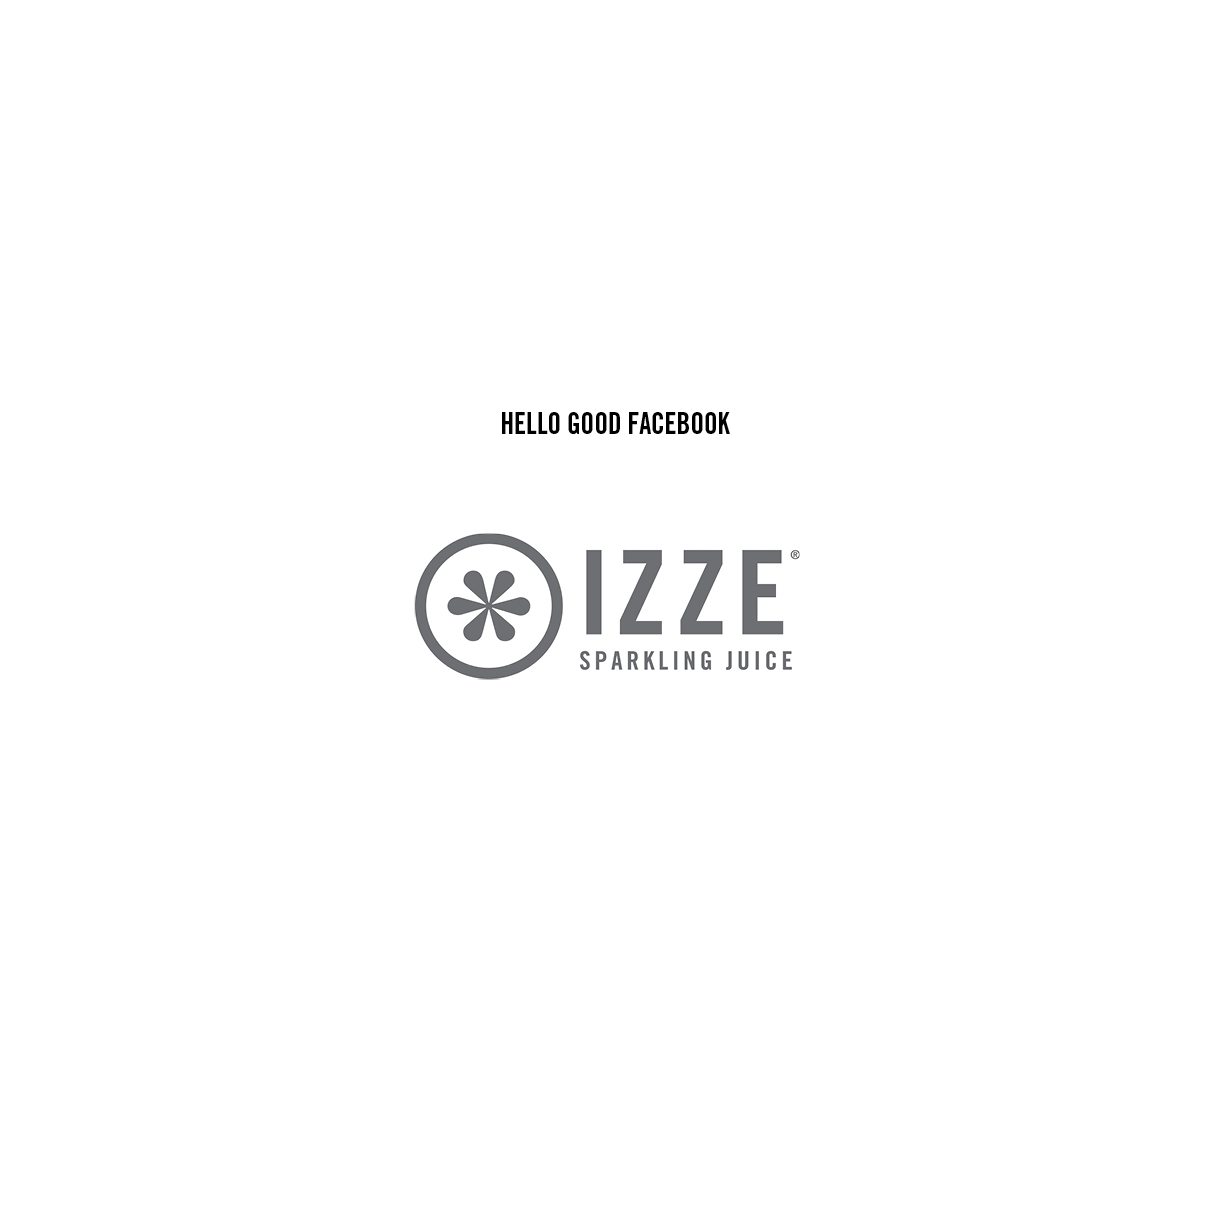 IZZE_hello_good_facebook